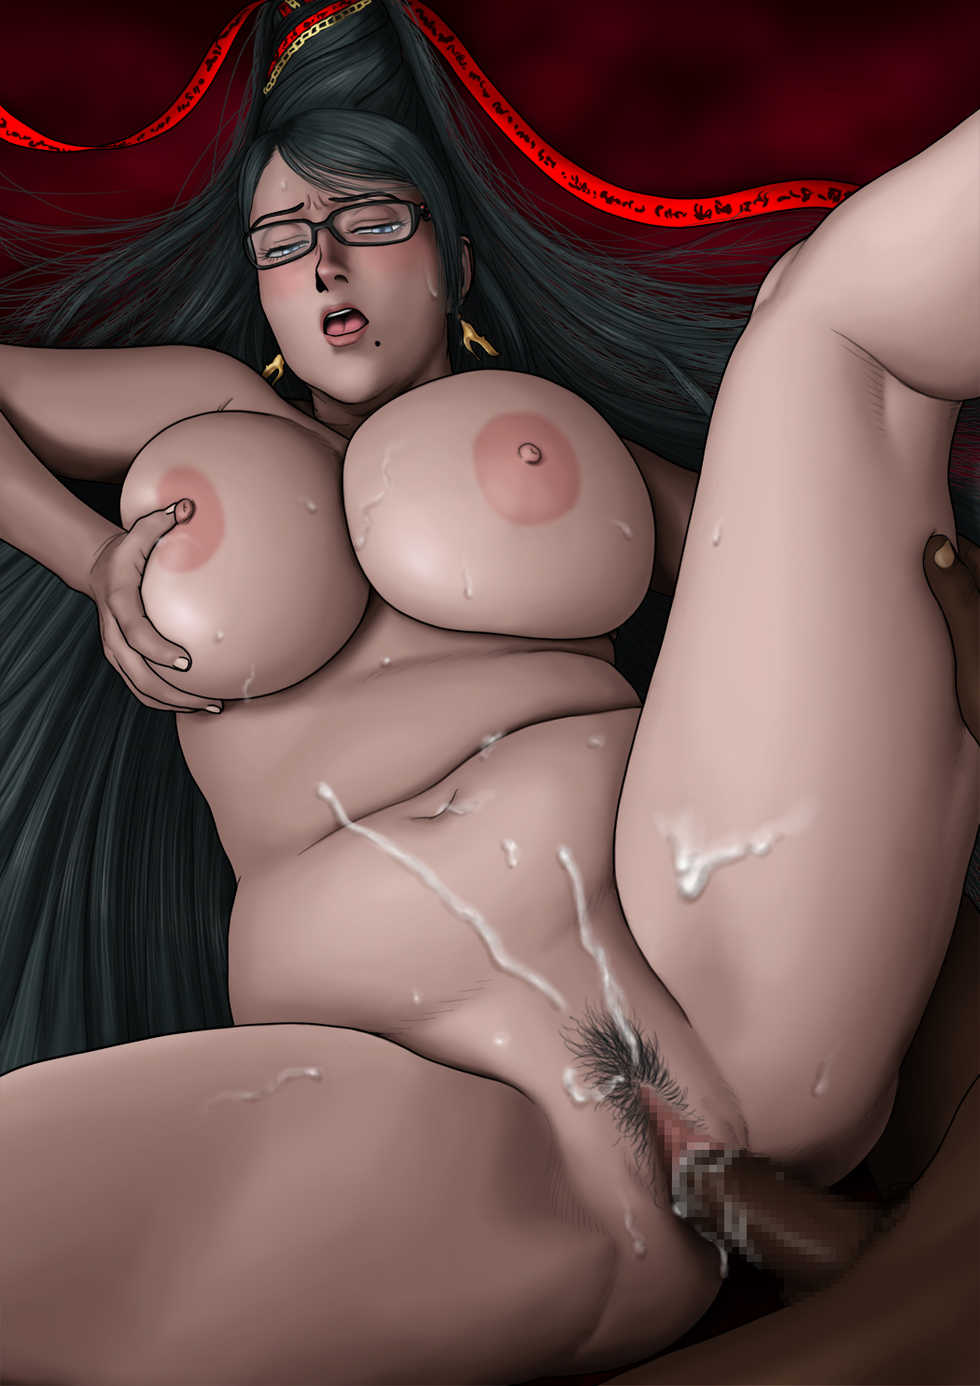 Bayonetta free gallery porn sex video